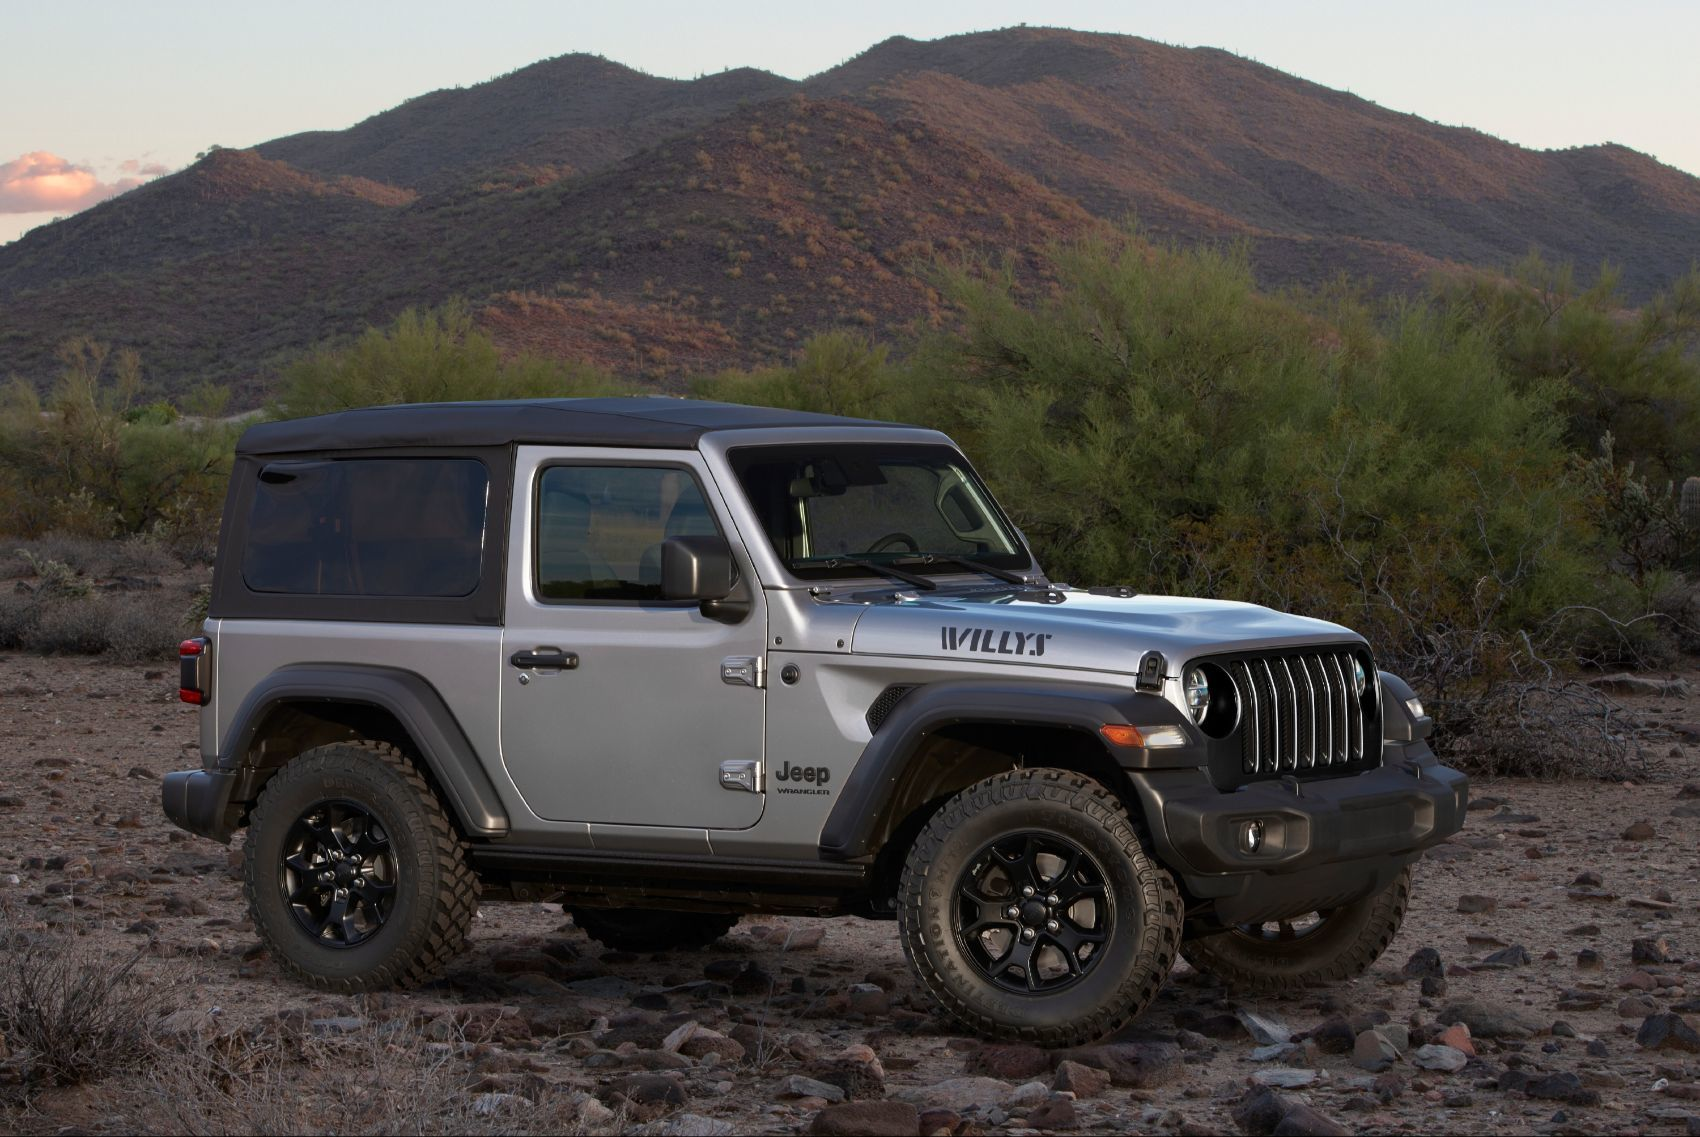 2020 Jeep Wrangler Willys; Black & Tan Editions Are Coming!